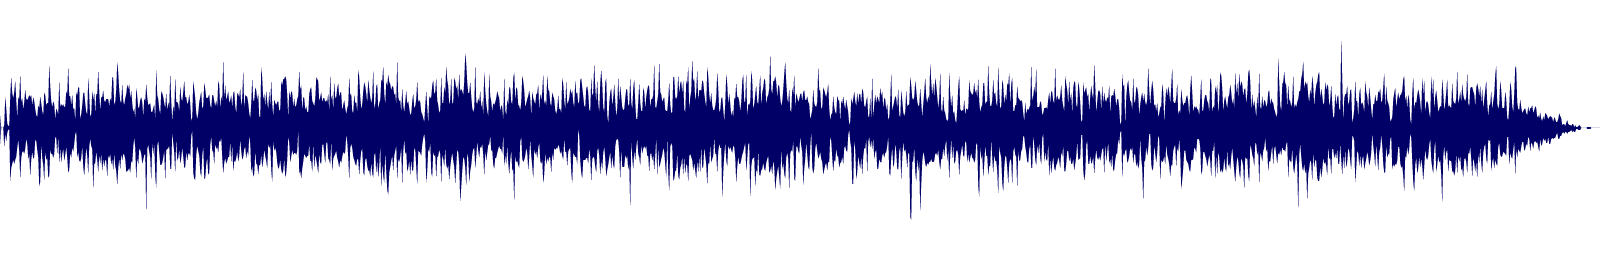 waveform of track #97441